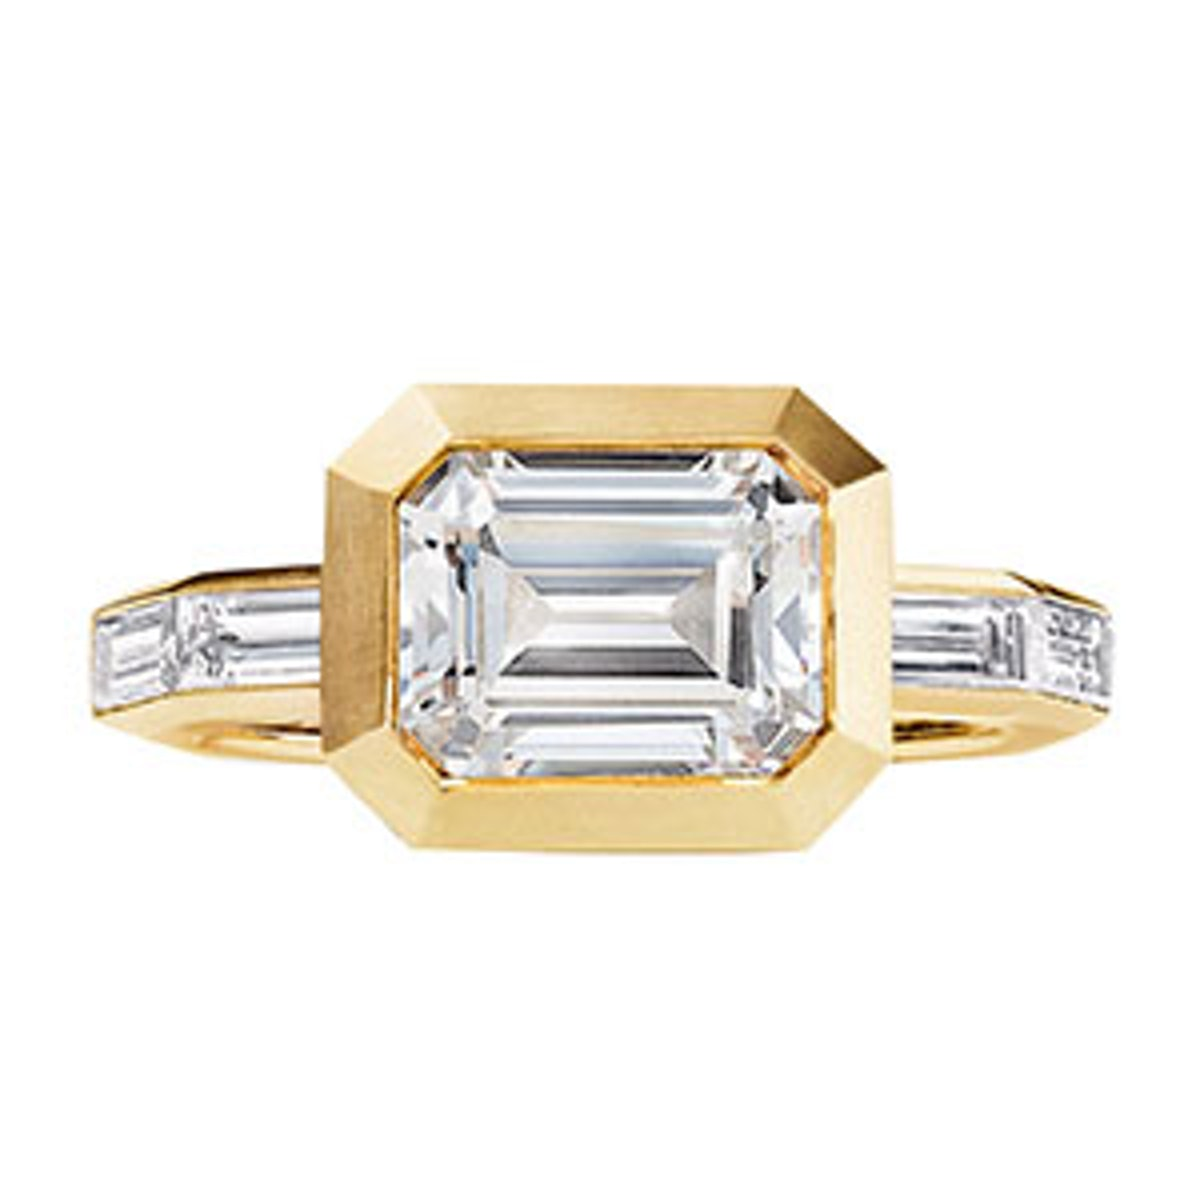 Delaunay Engagement Ring in 18K Gold